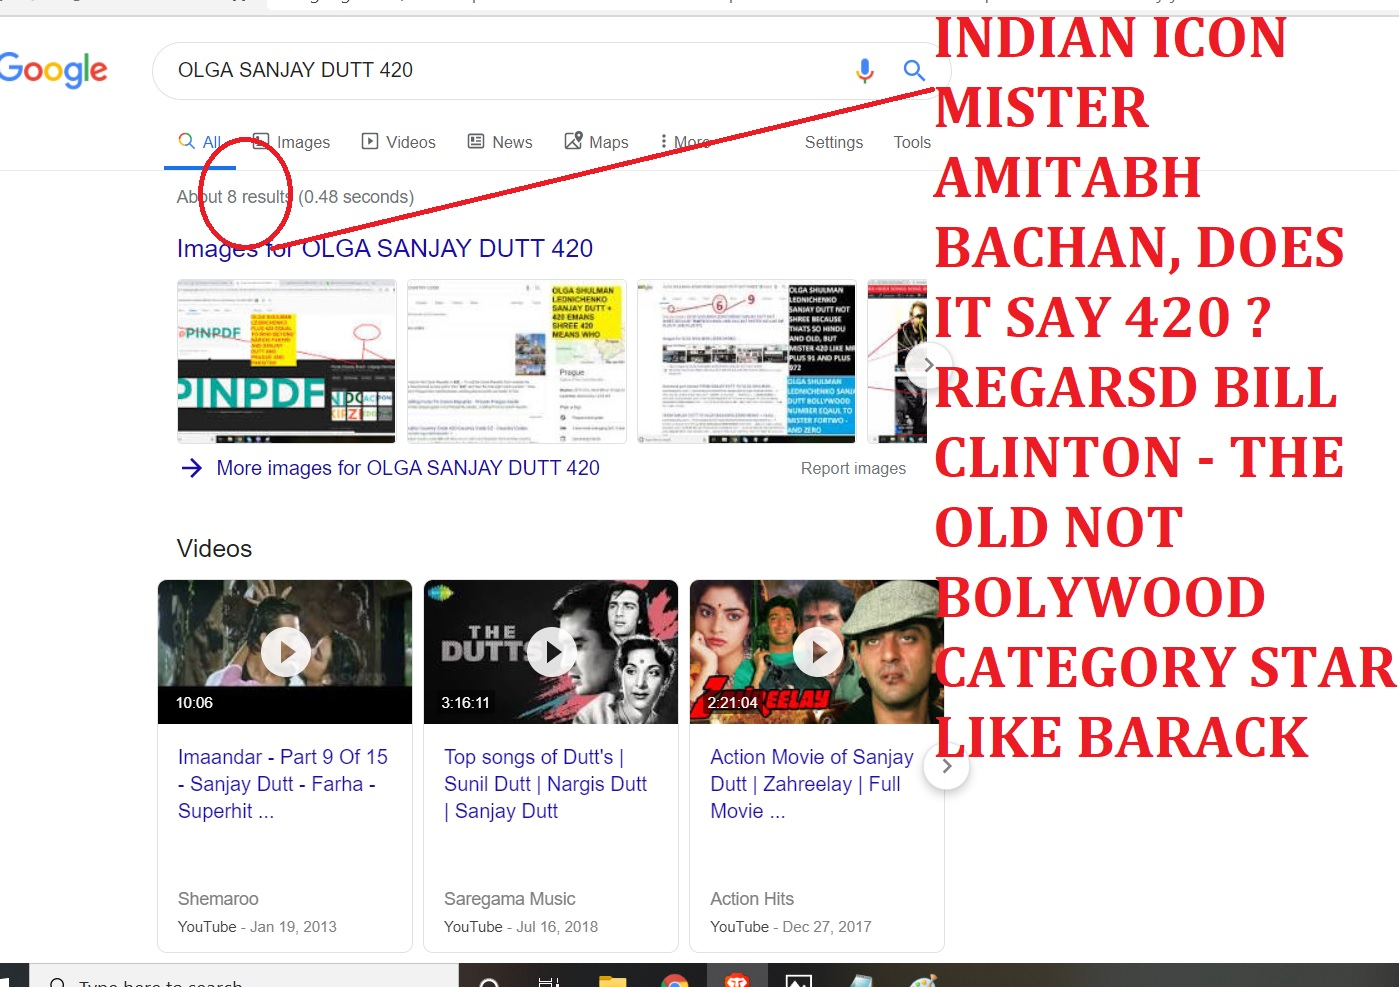 INDIAN ICON MISTER AMITABH BACHAN, DOES IT SAY 420 REGARSD BILL CLINTON - THE OLD NOT BOLYWOOD CATEGORY STAR LIKE BARACK